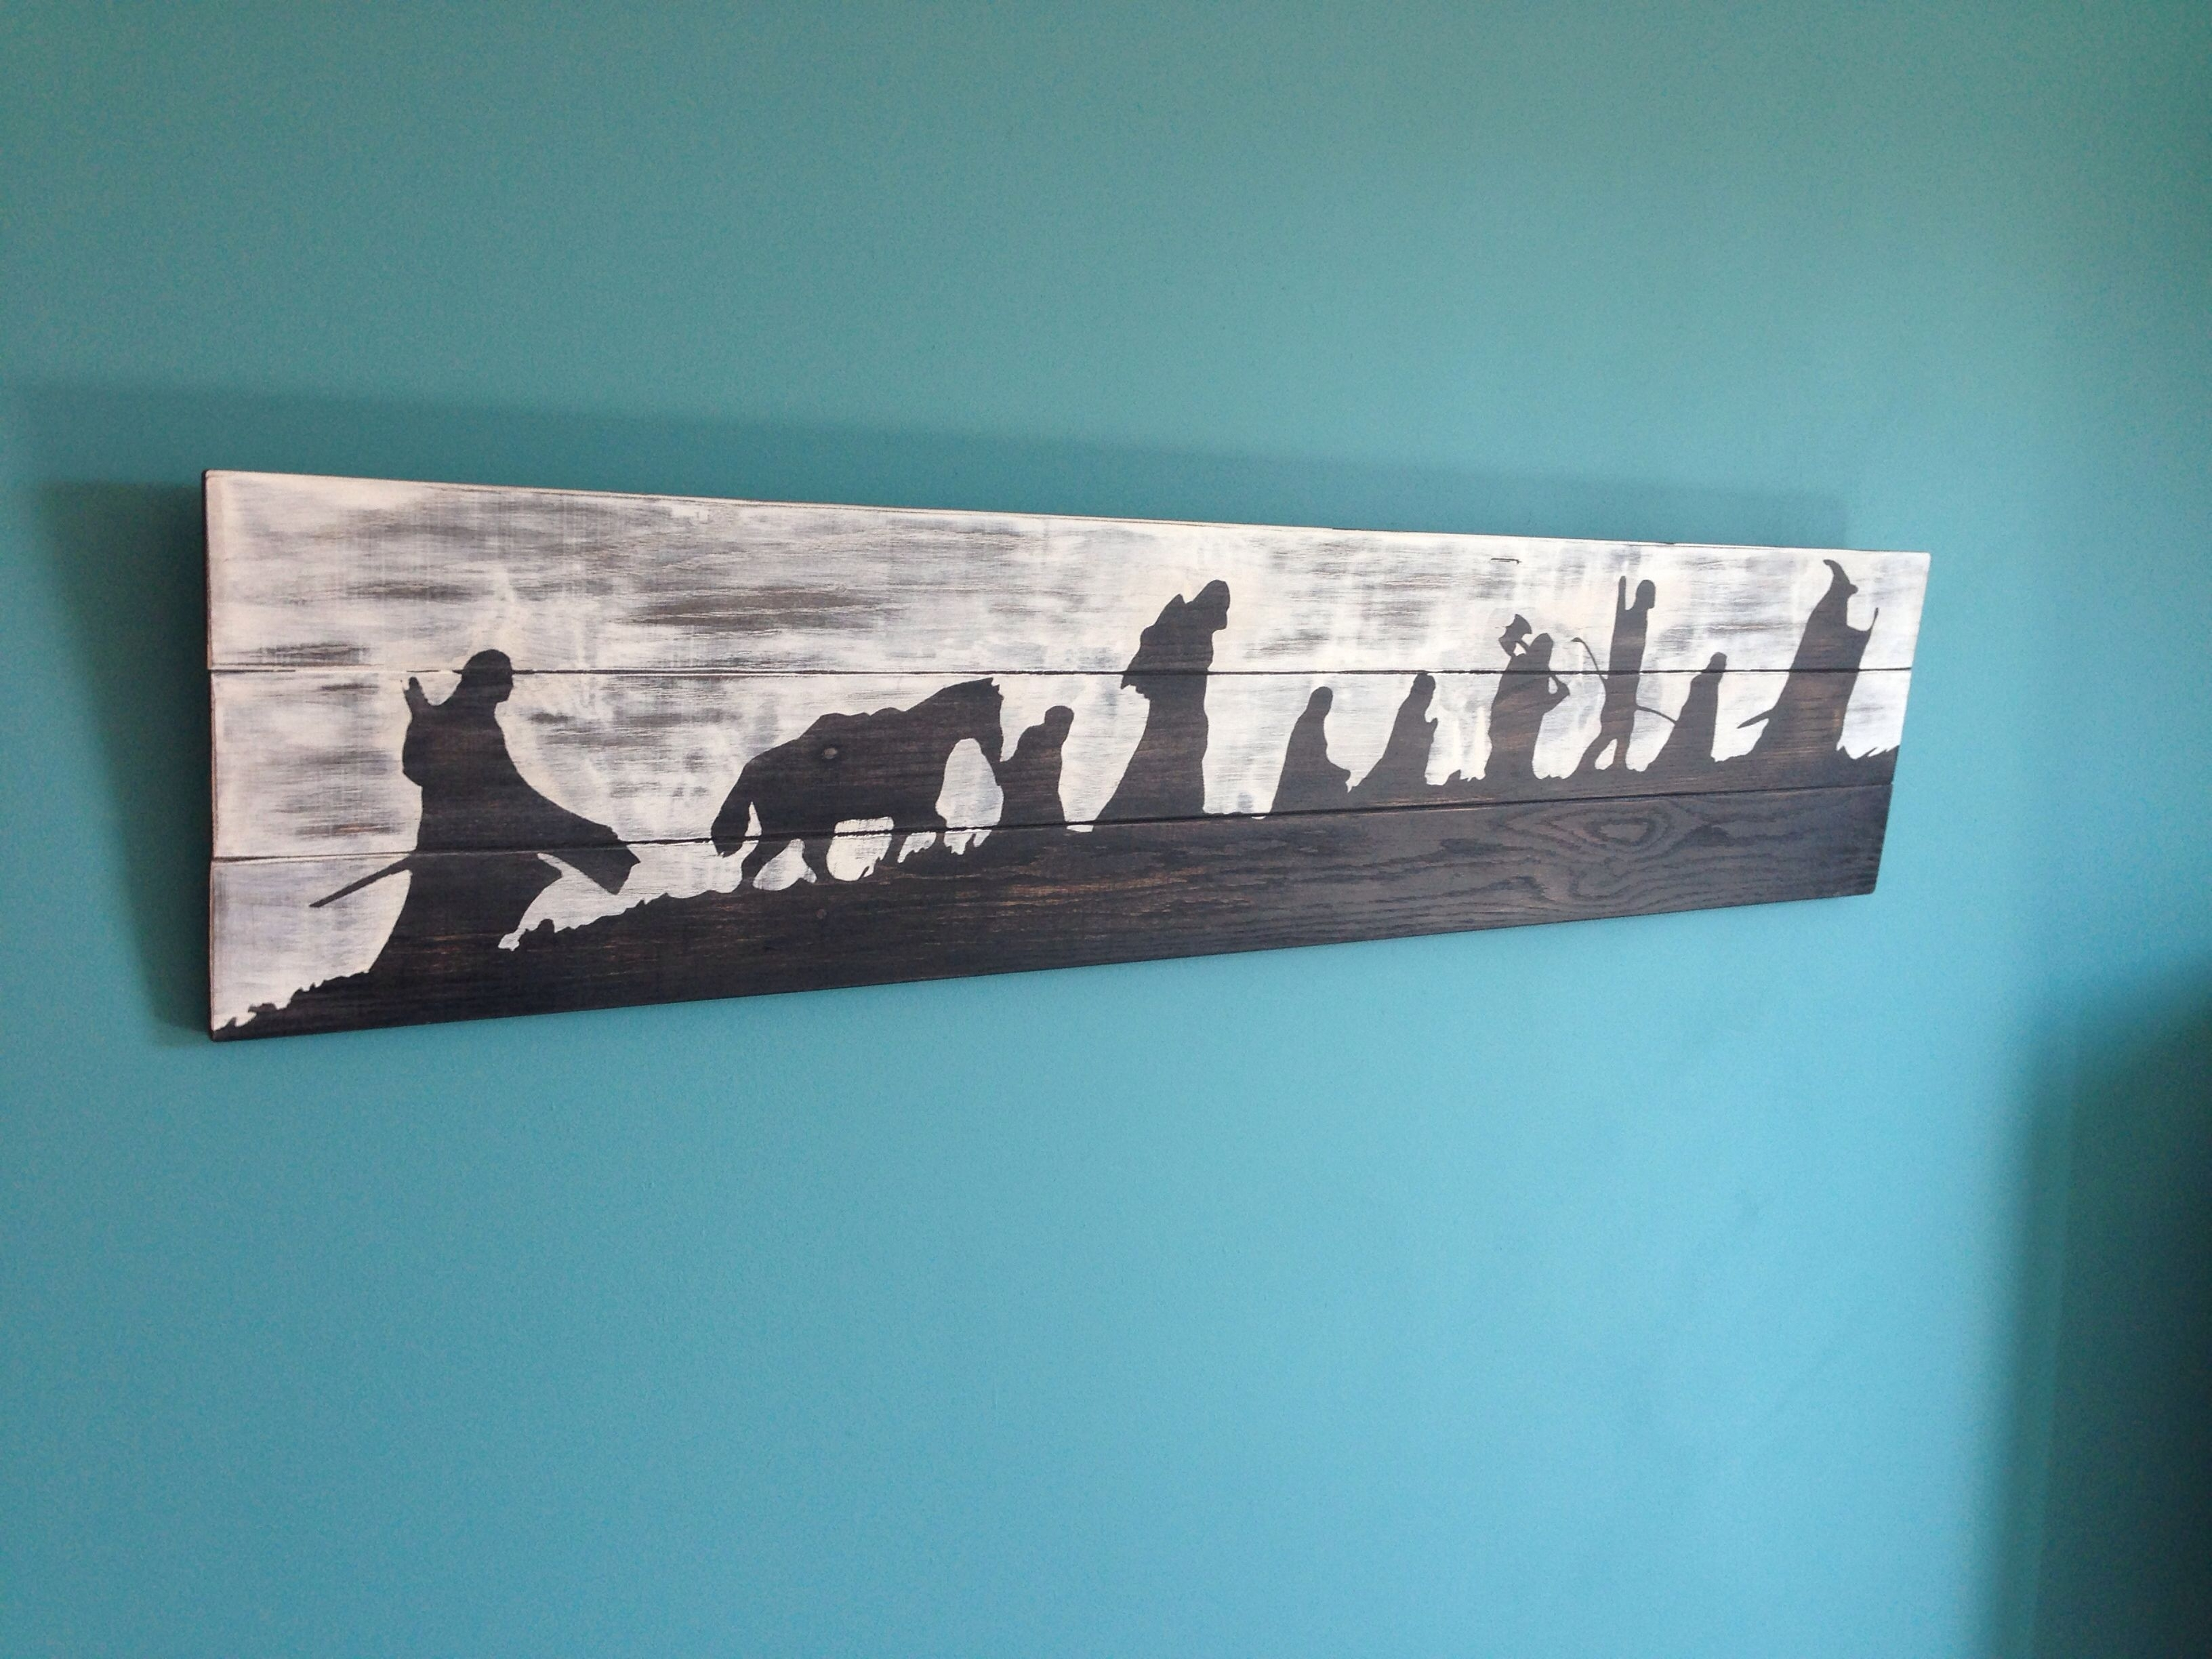 Lord Of The Rings Wall Art | Diy And My House | Pinterest | Lord With Regard To Latest Lord Of The Rings Wall Art (View 11 of 20)